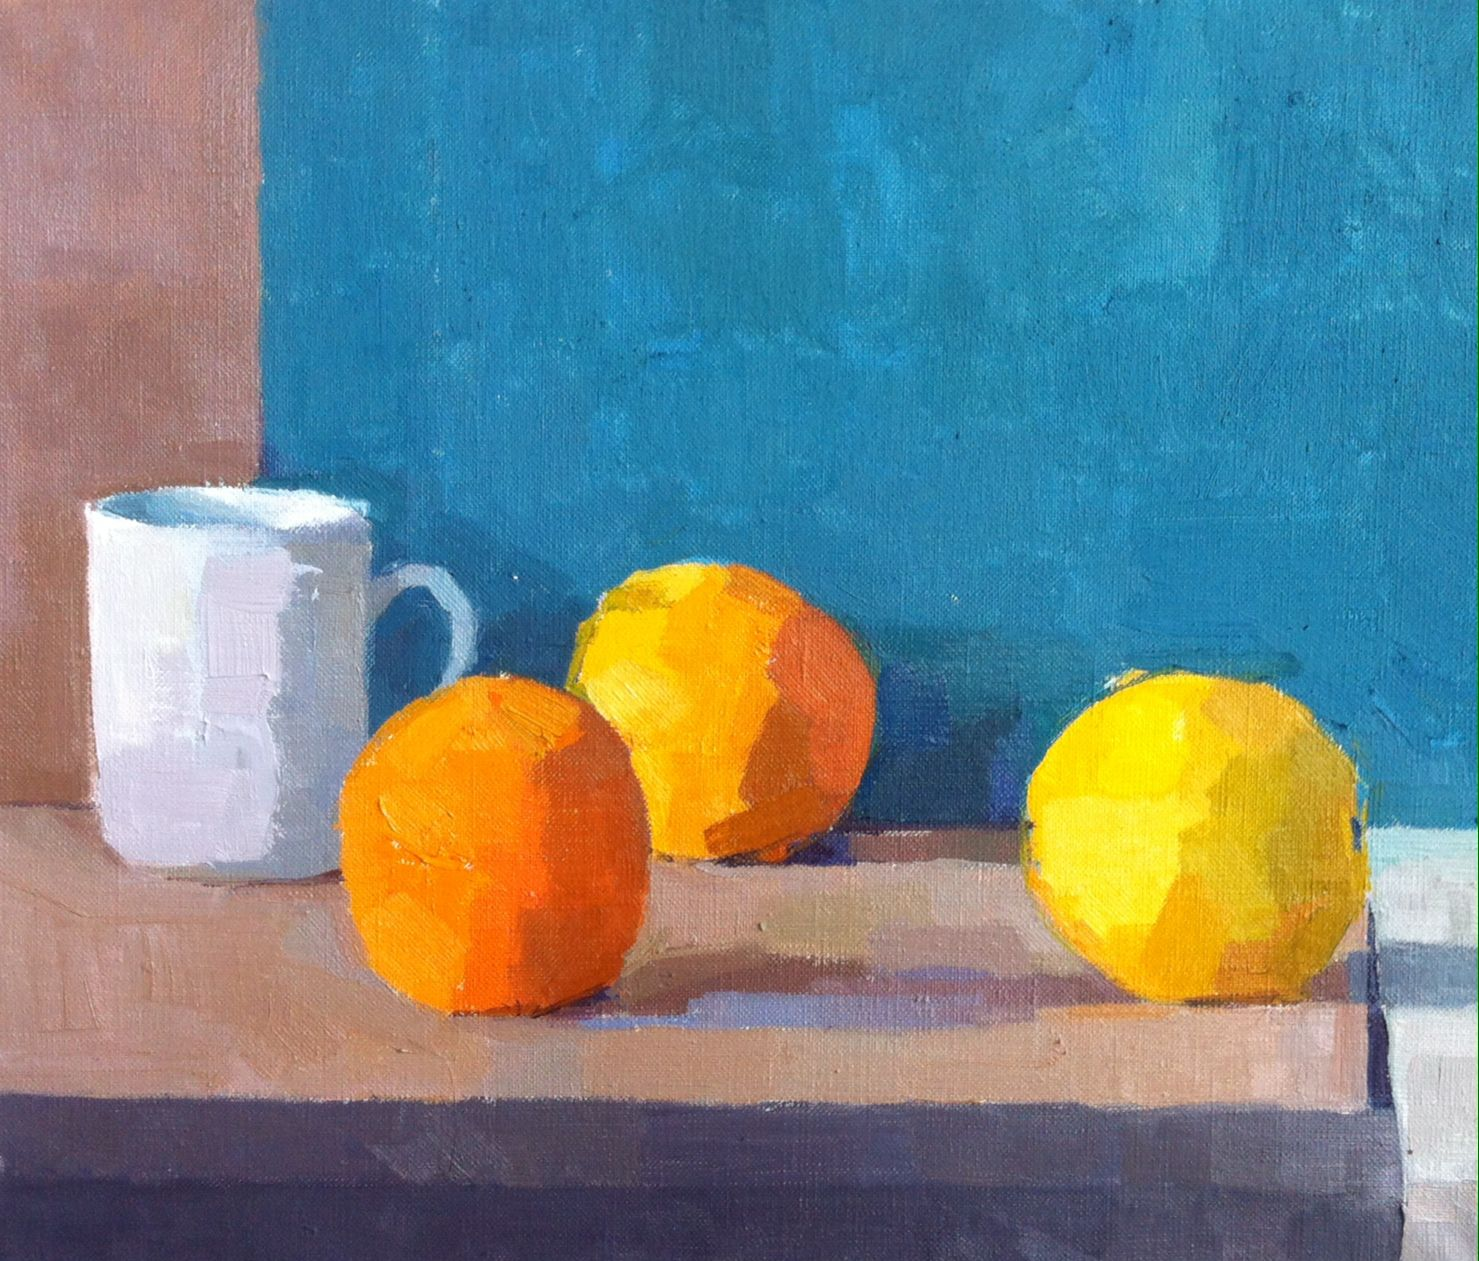 #Spackman#still-life#oil painting#Three Oranges